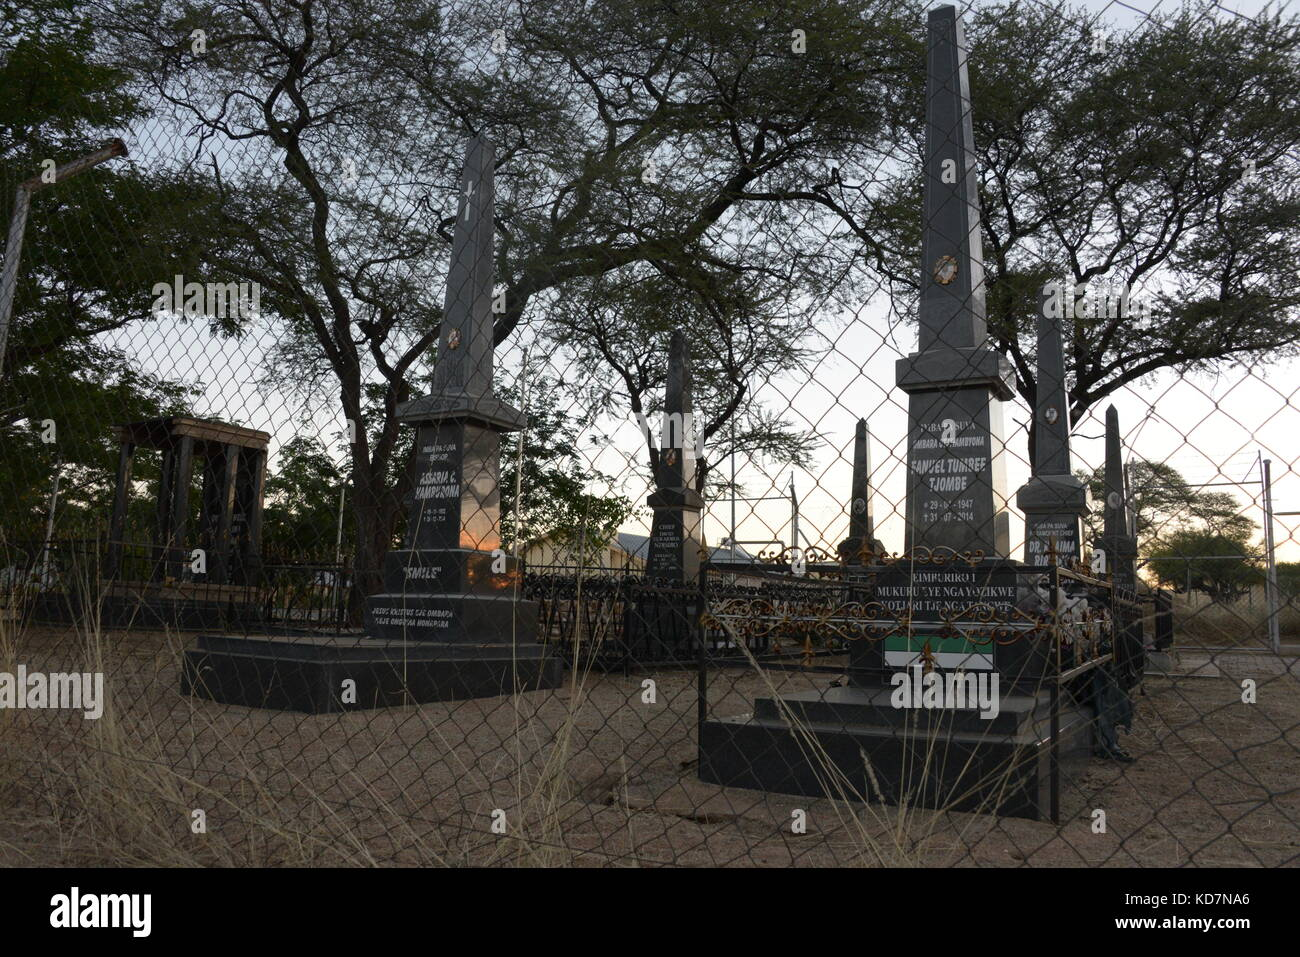 Picture of a cemetery for high-ranking leaders of the Herero ethnic group in Okahandja, Namibia, taken 14 May 2017. - Stock Image